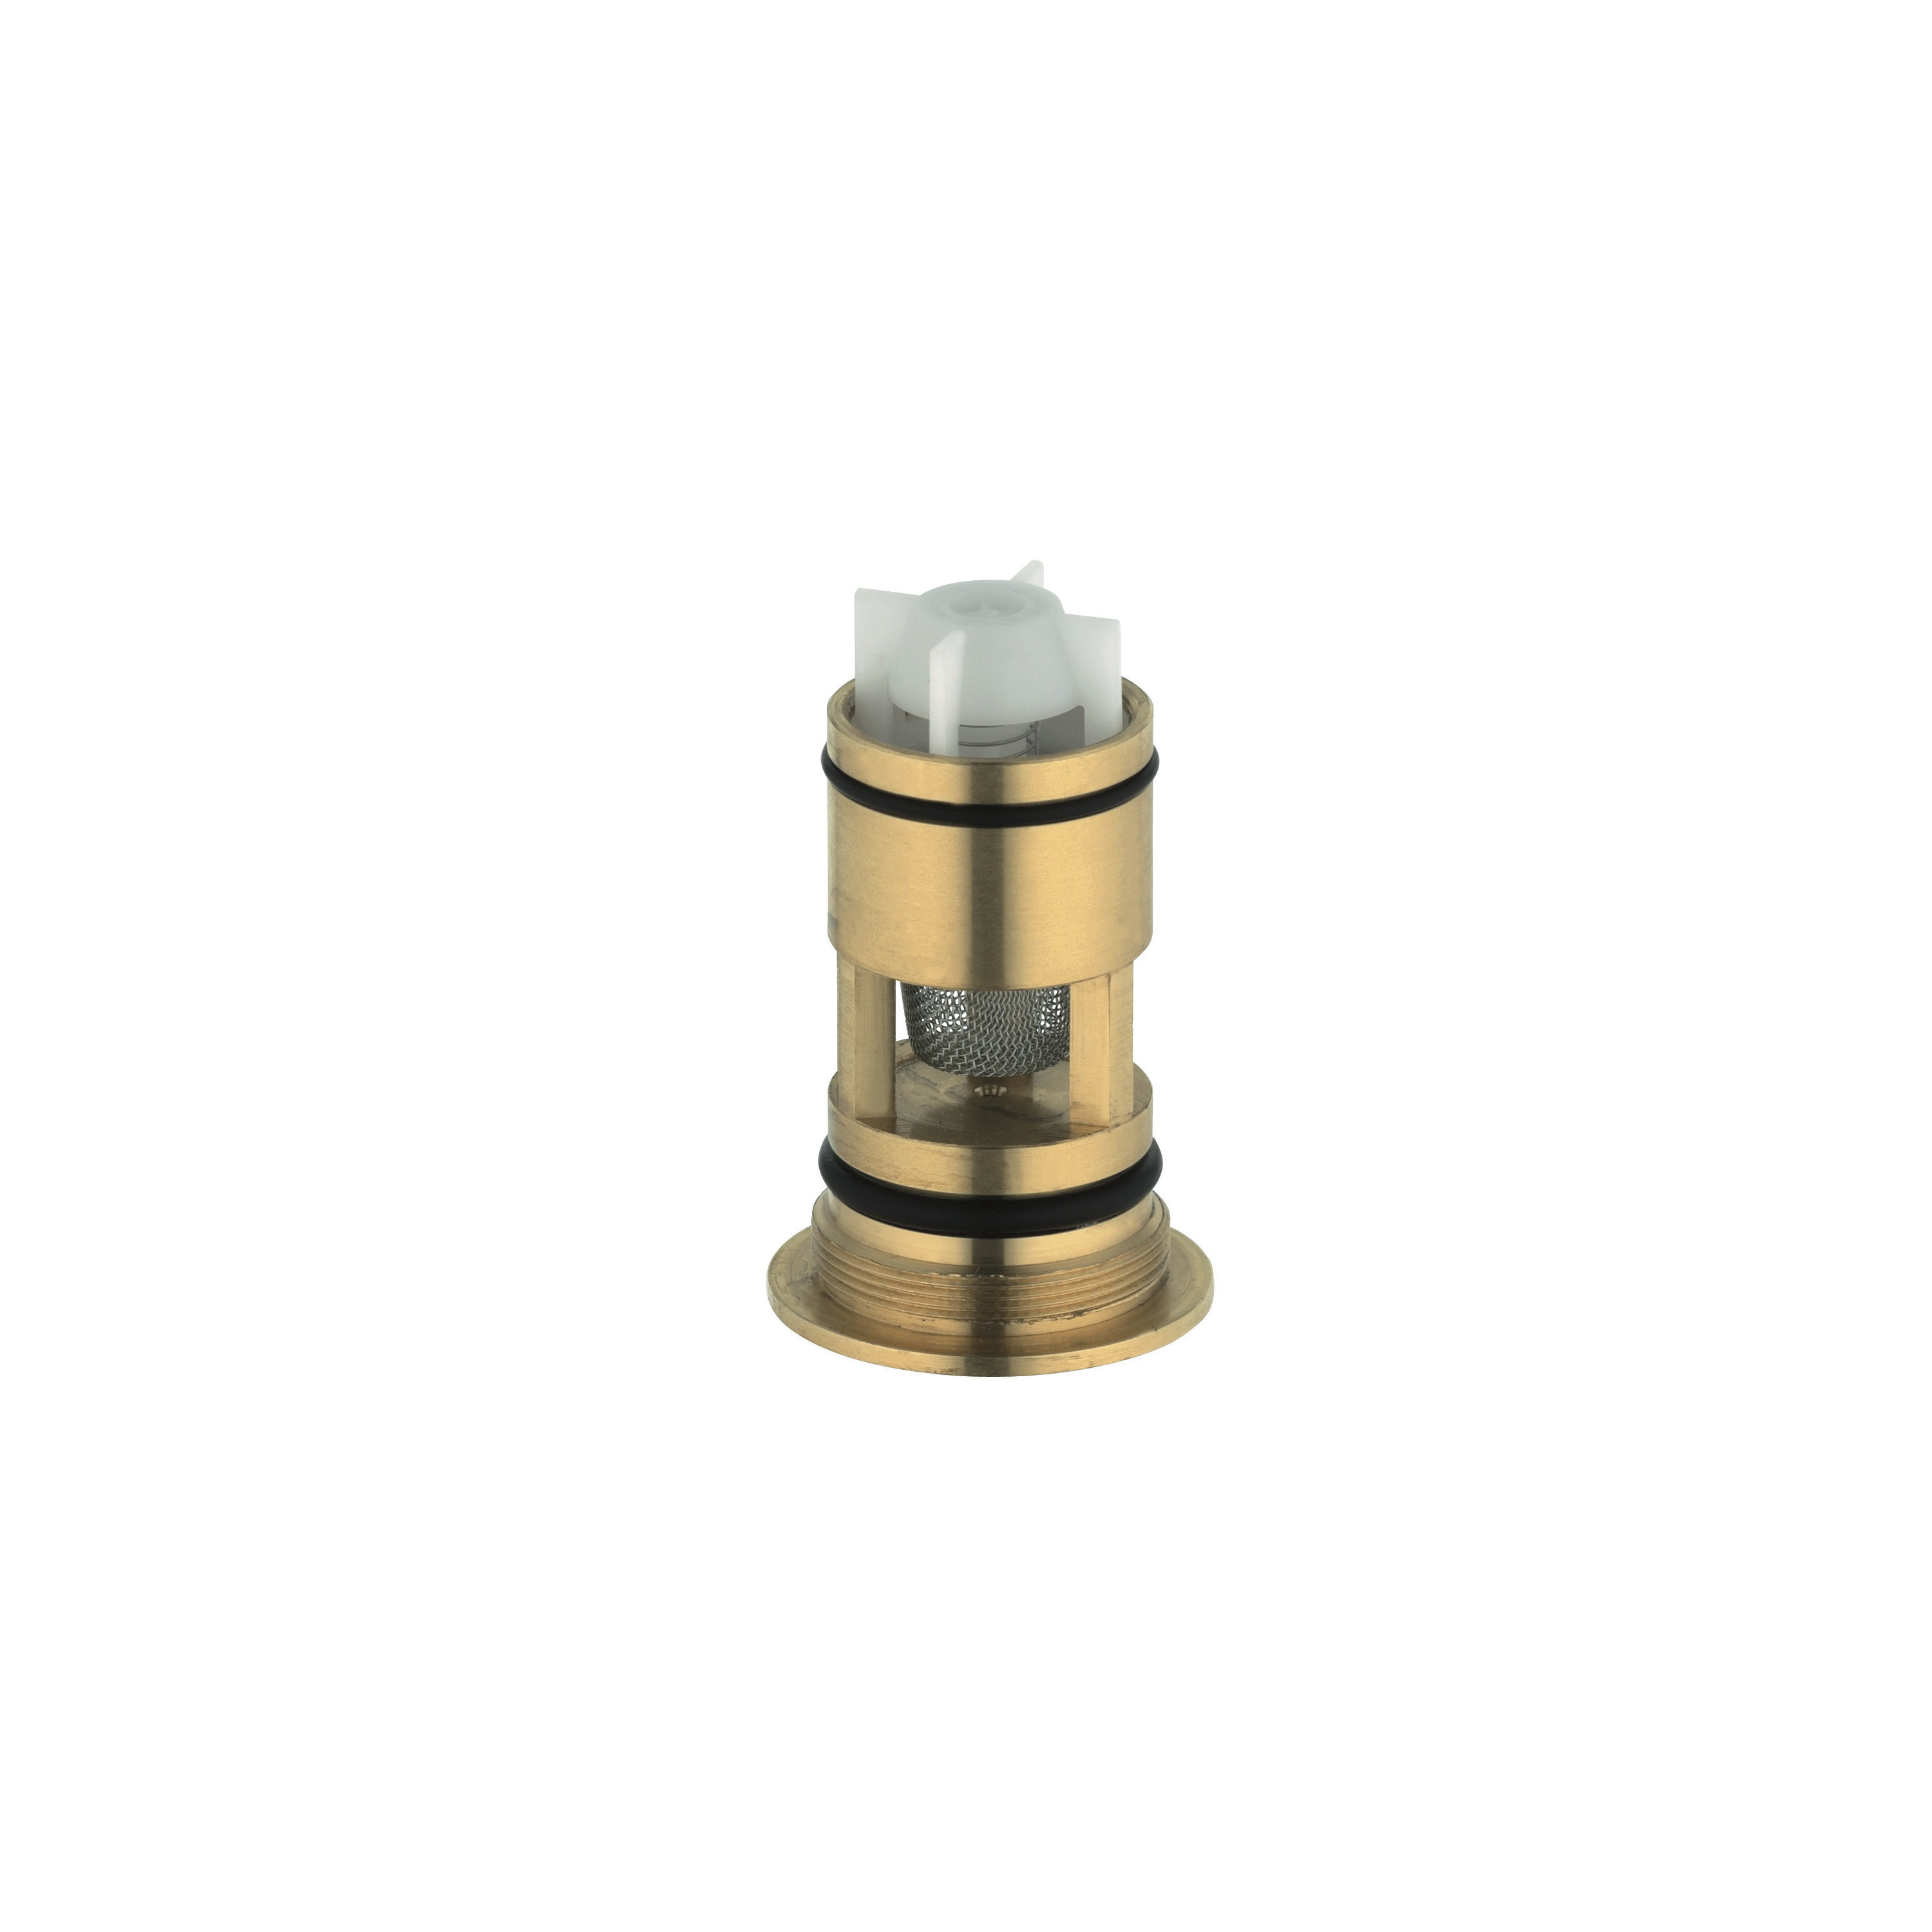 GROHE 47477000 Non-Return Valve, 3/4 in, Import